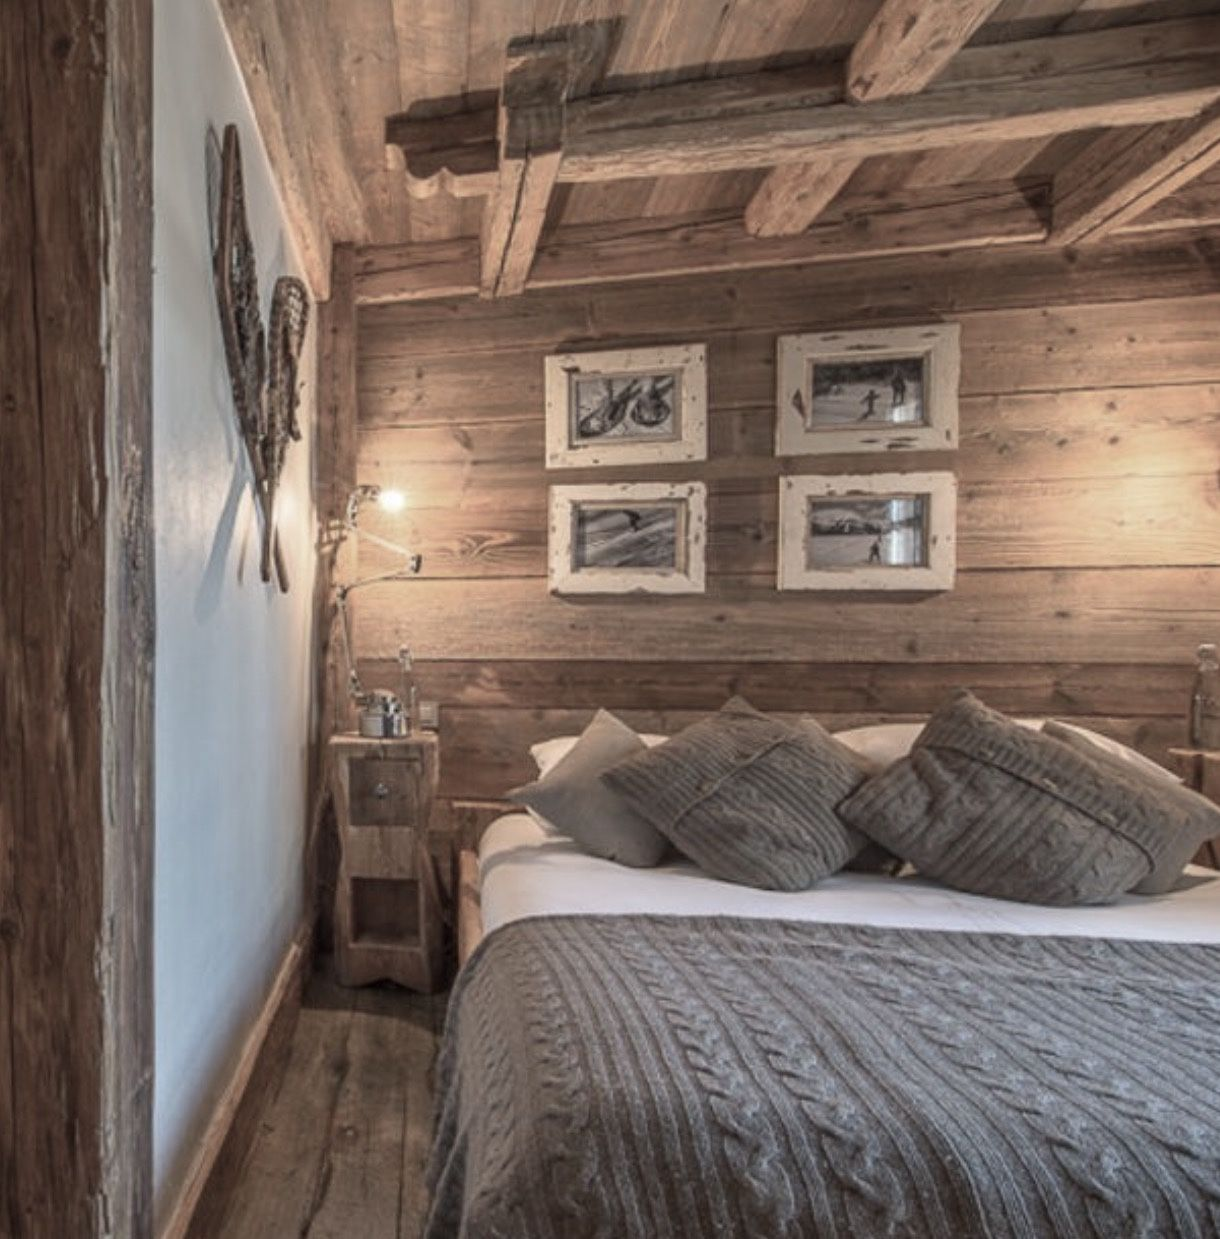 Cocooning chalet martine haddouche living hut wood for Innendekoration chalet